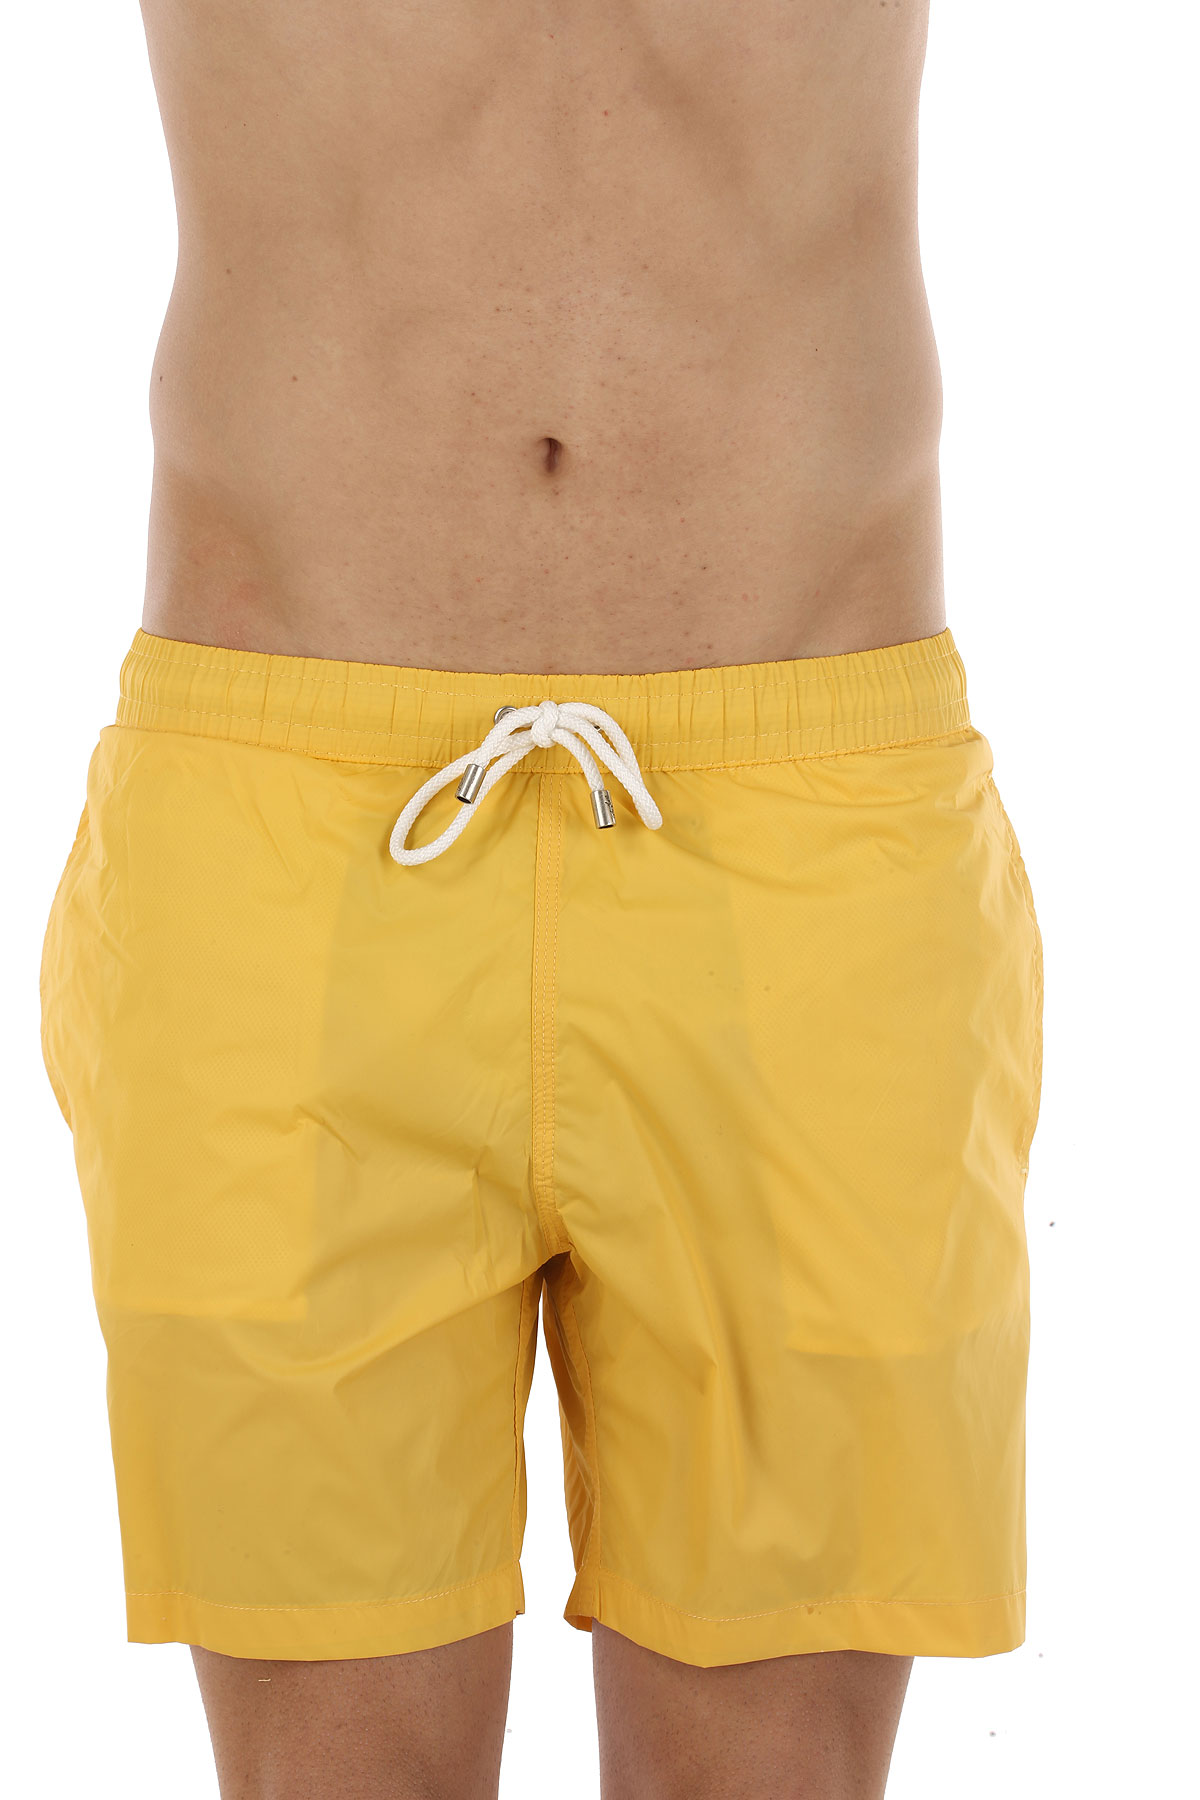 Image of Hartford Swim Shorts Trunks for Men On Sale in Outlet, Yellow, poliammide, 2017, S L XL